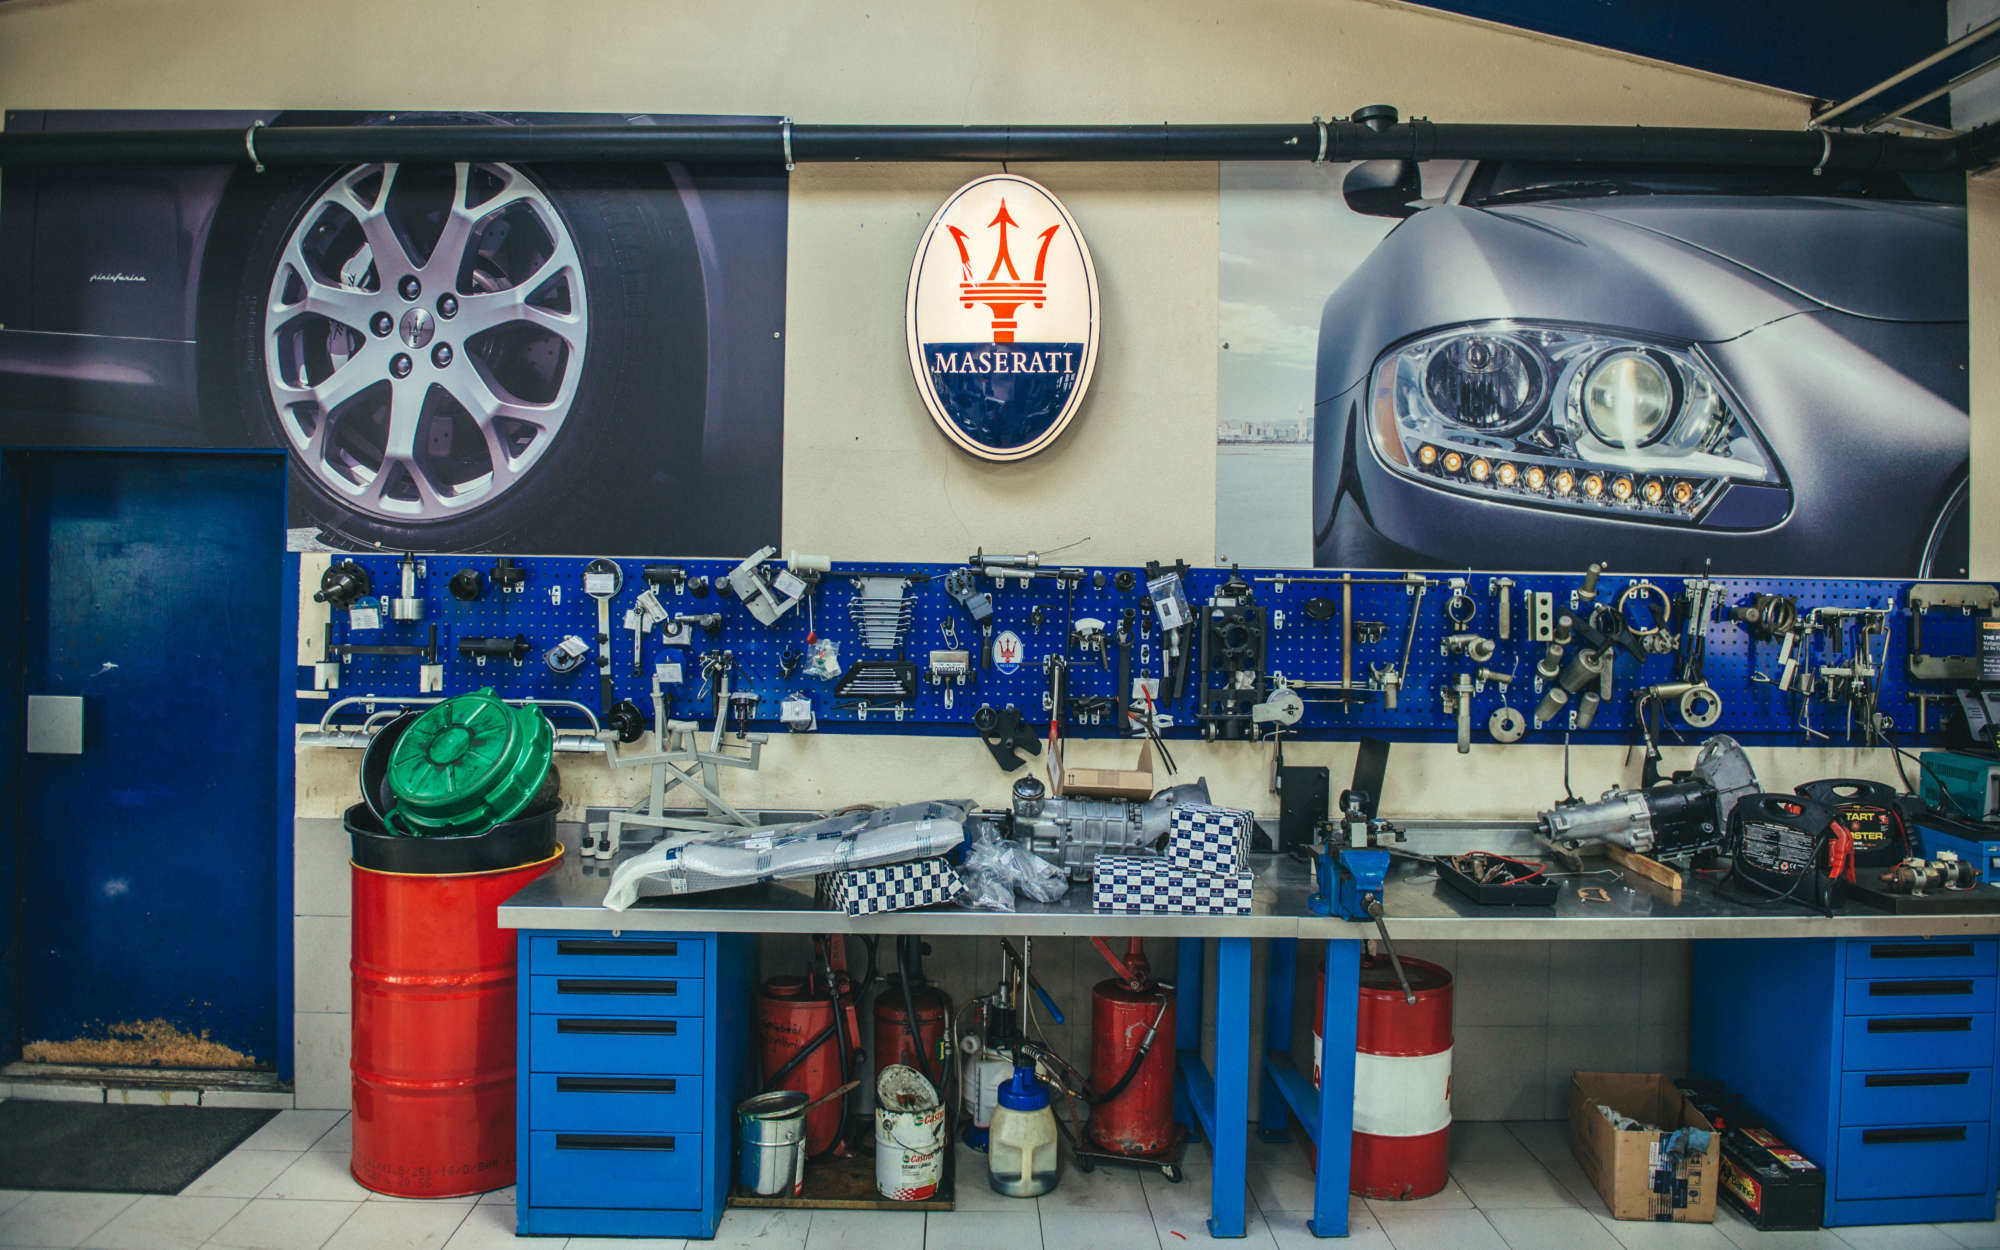 Limacher Maserati workshop header image 6000x3750